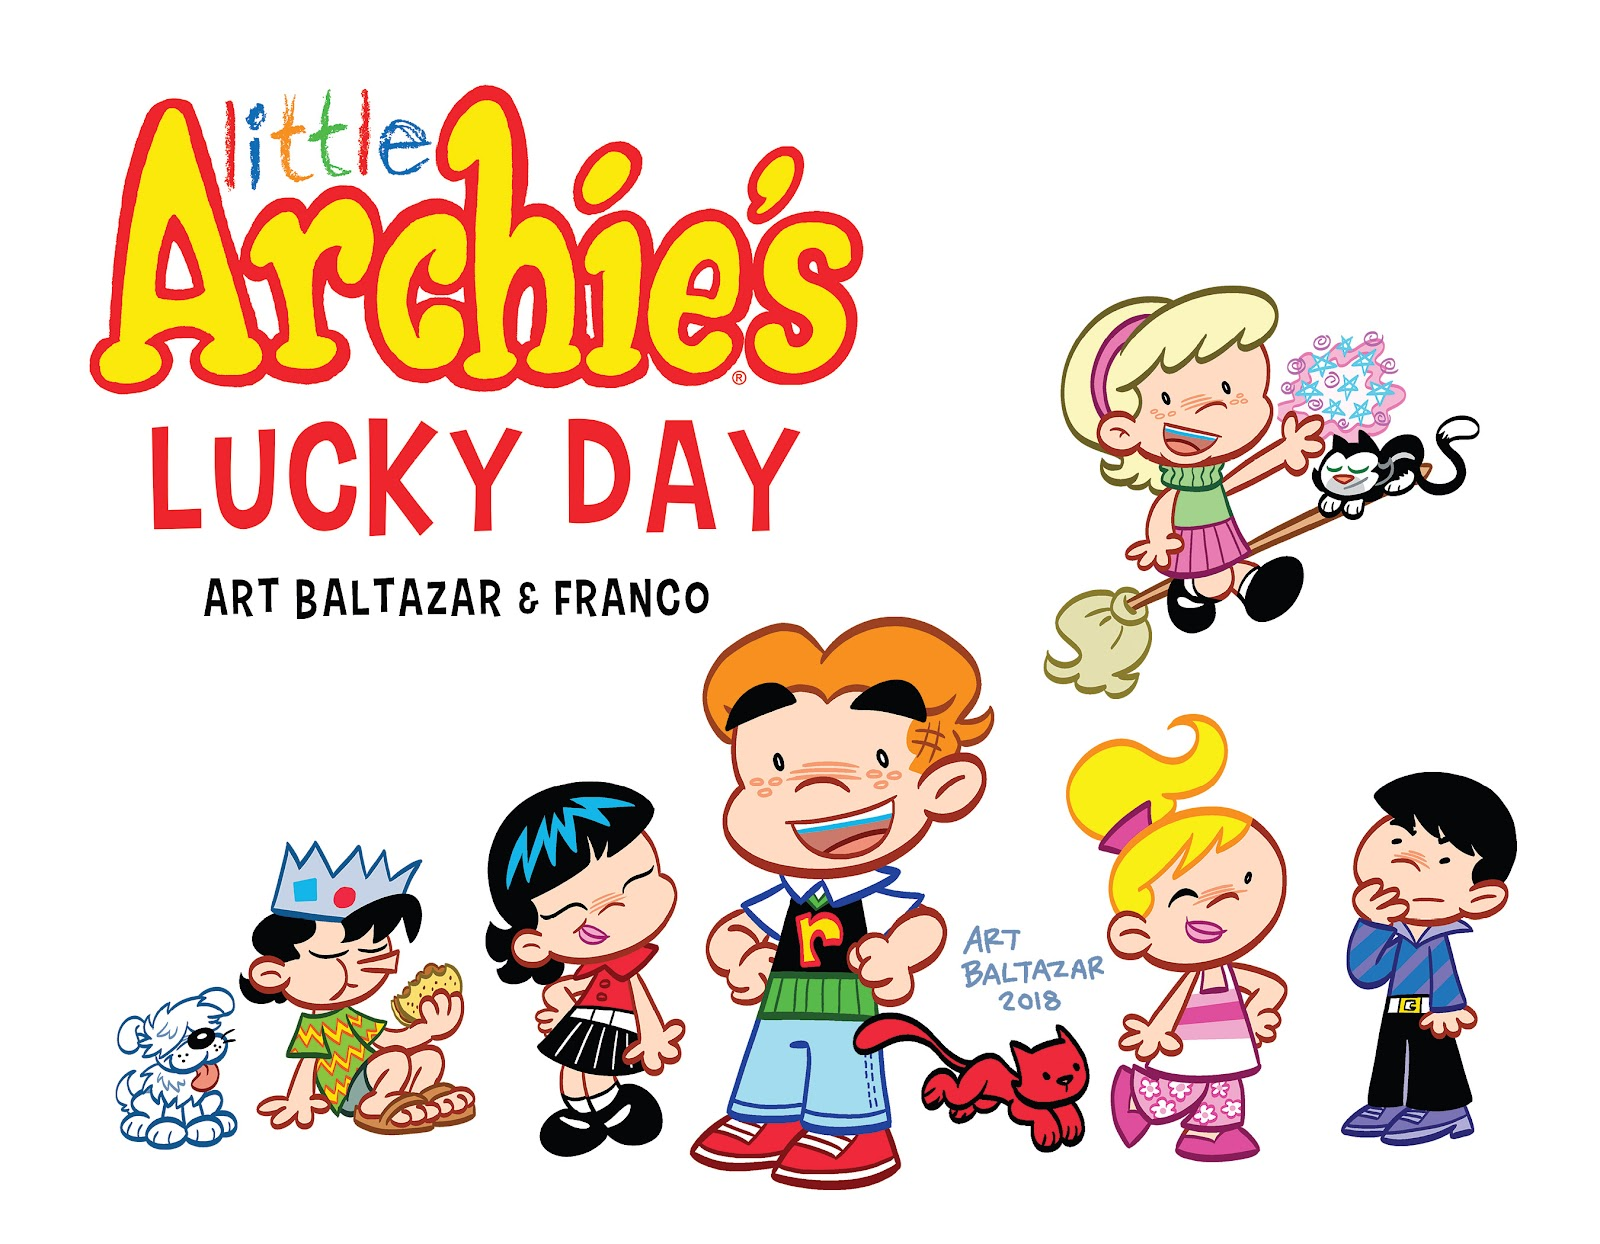 Read online Little Archie's Lucky Day comic -  Issue # Full - 3